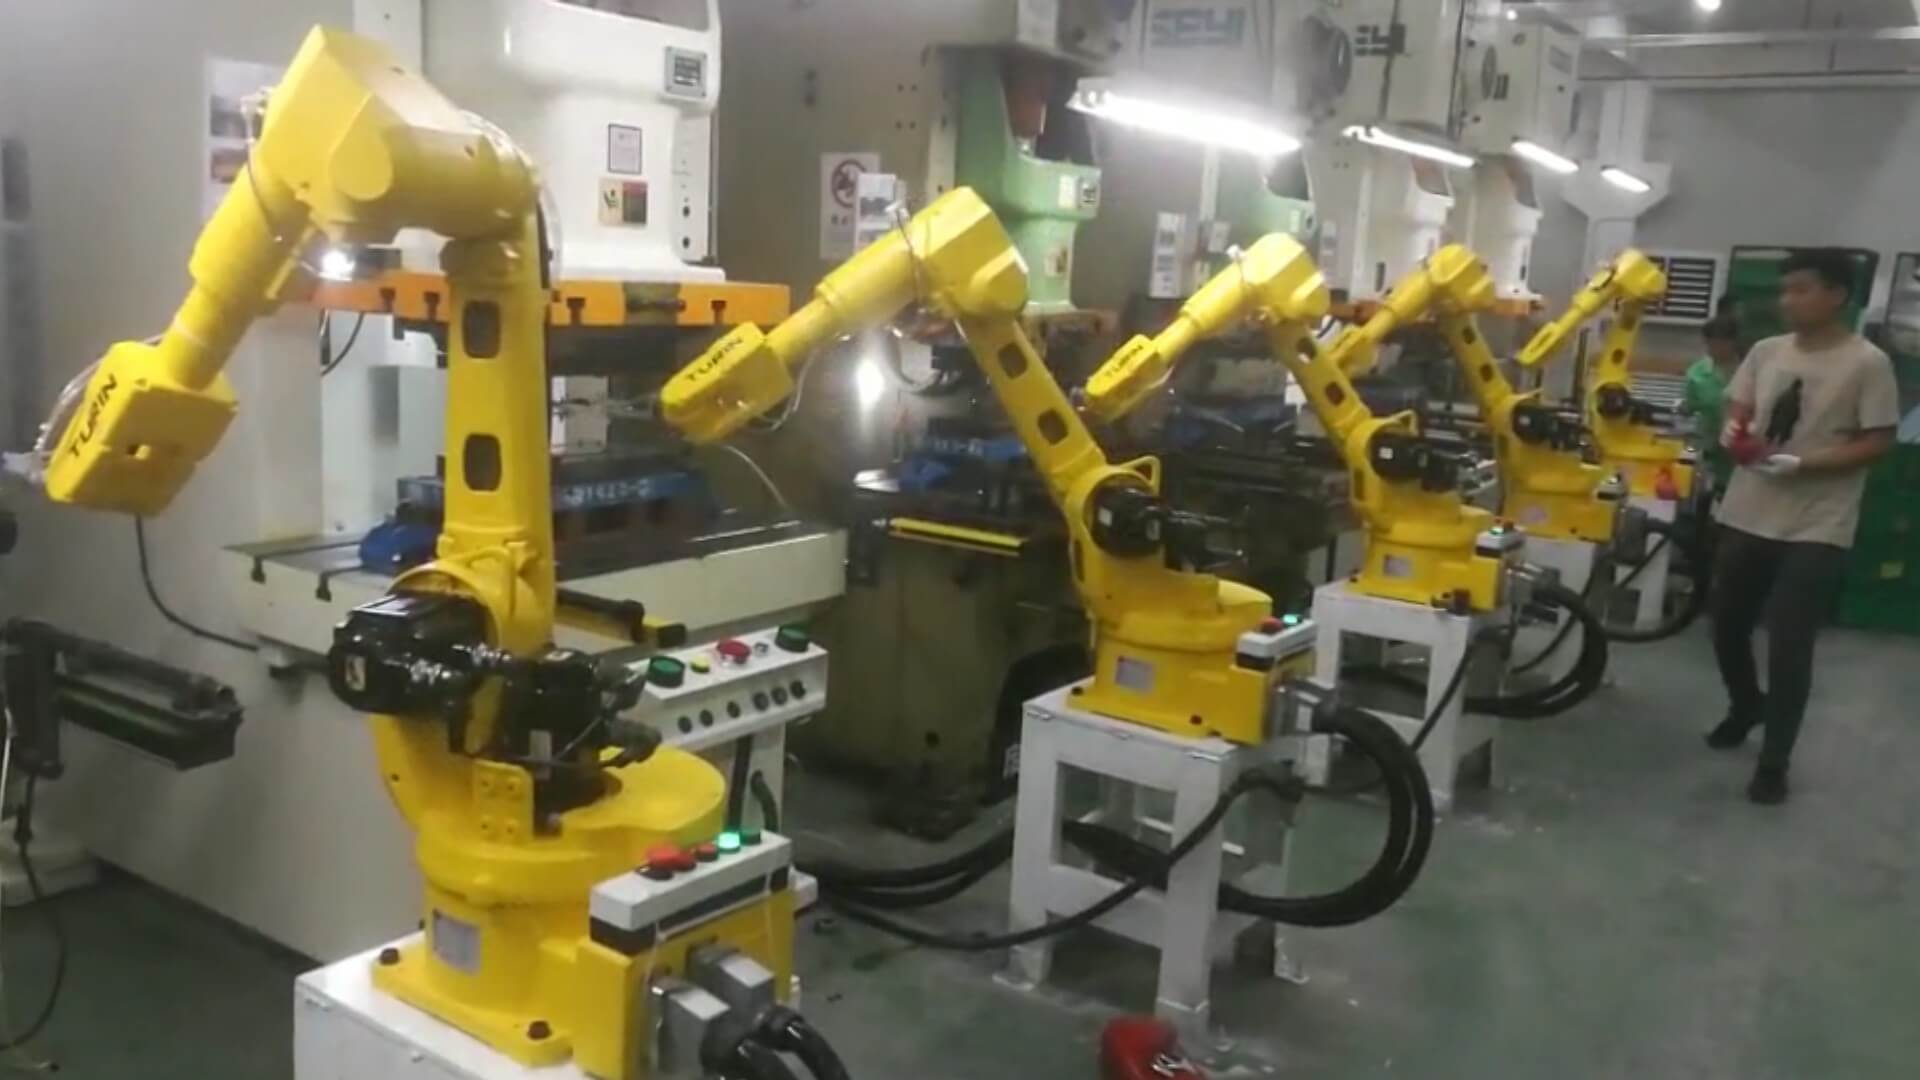 Automatic Robot Arm